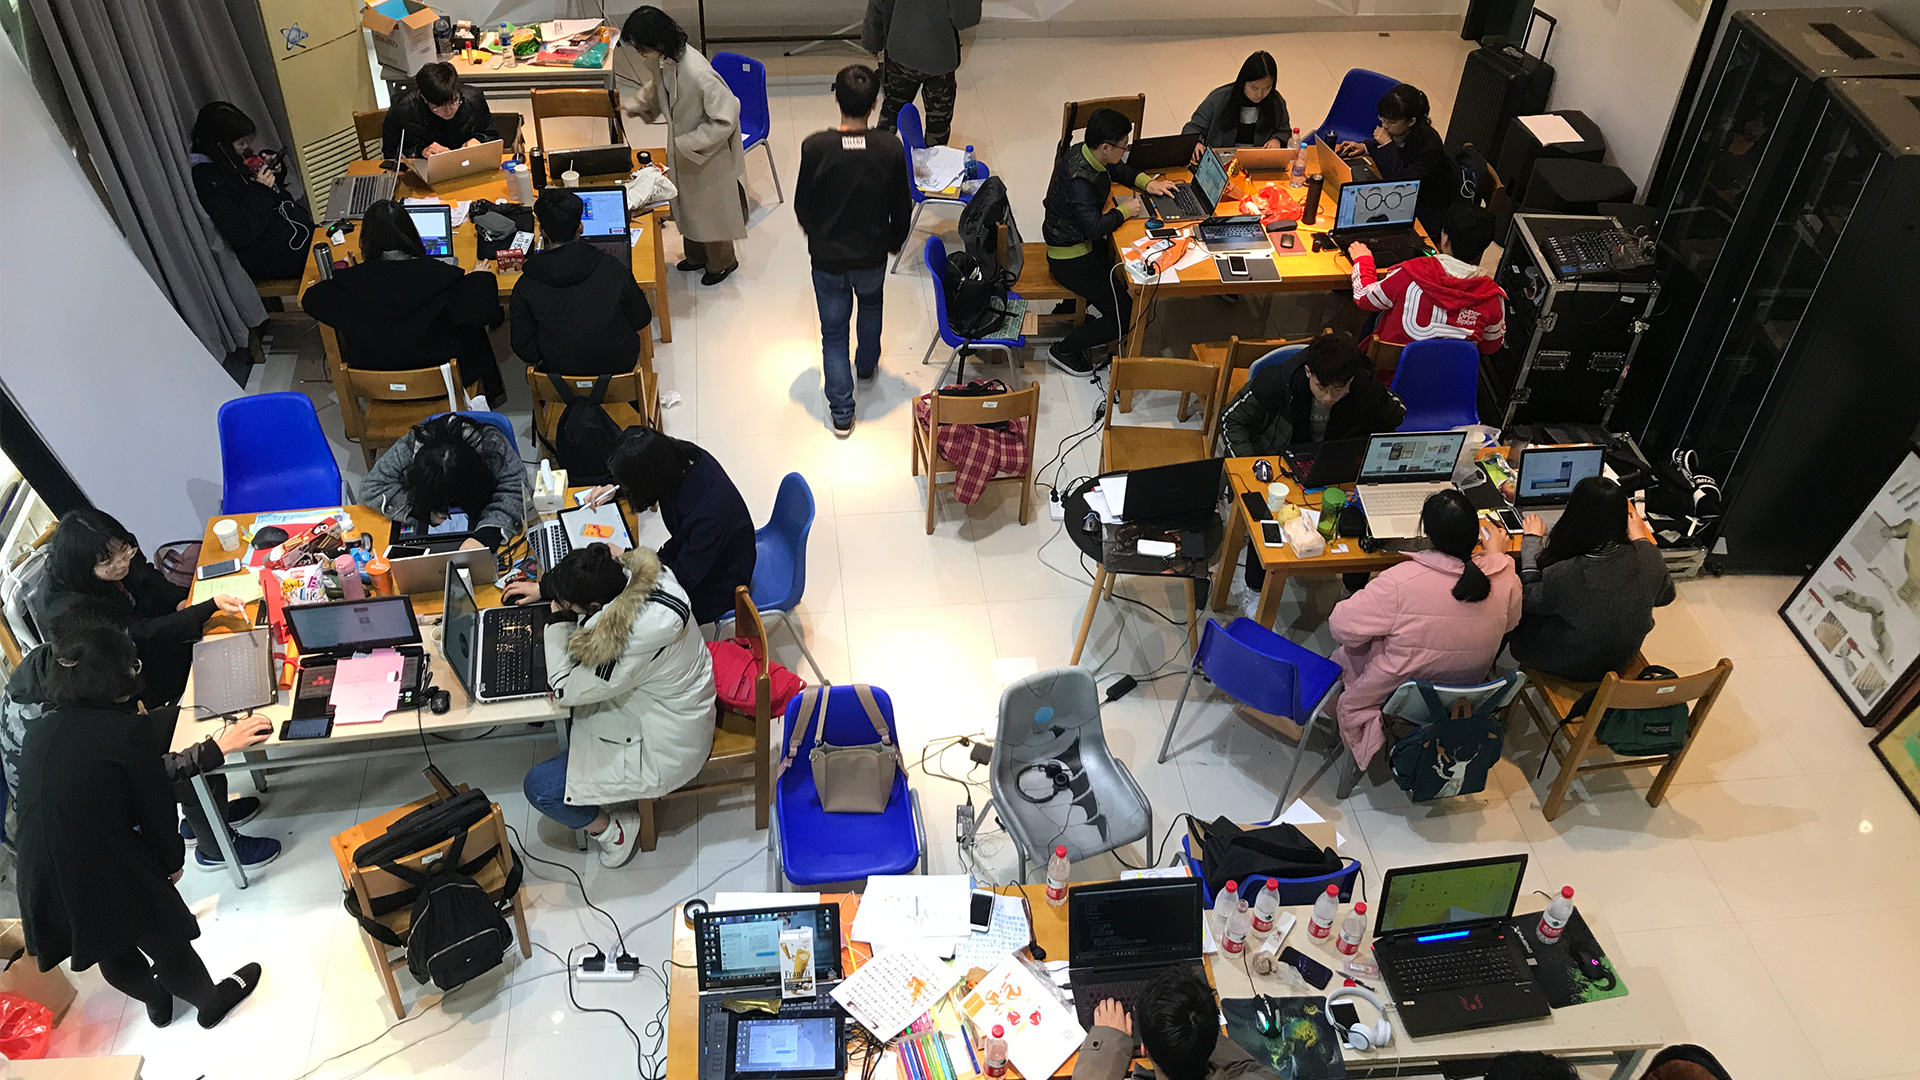 Classroom full of Chinese students developing serious games